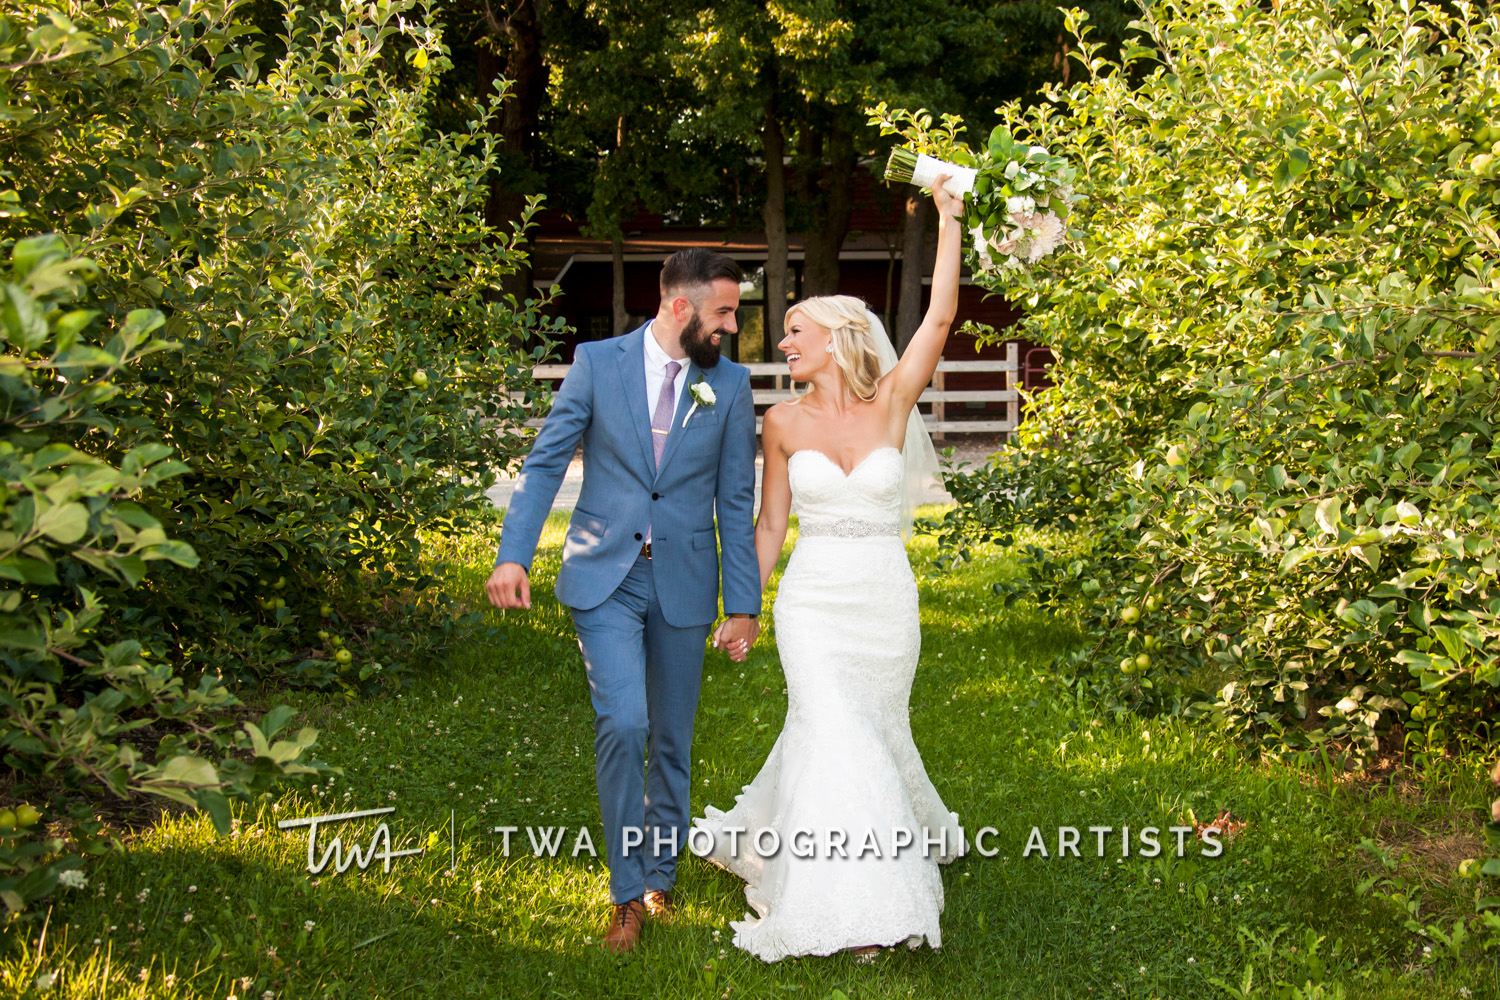 Weddings at County Line Orchard | TWA Photographic Artists | Chicago Wedding Photographers